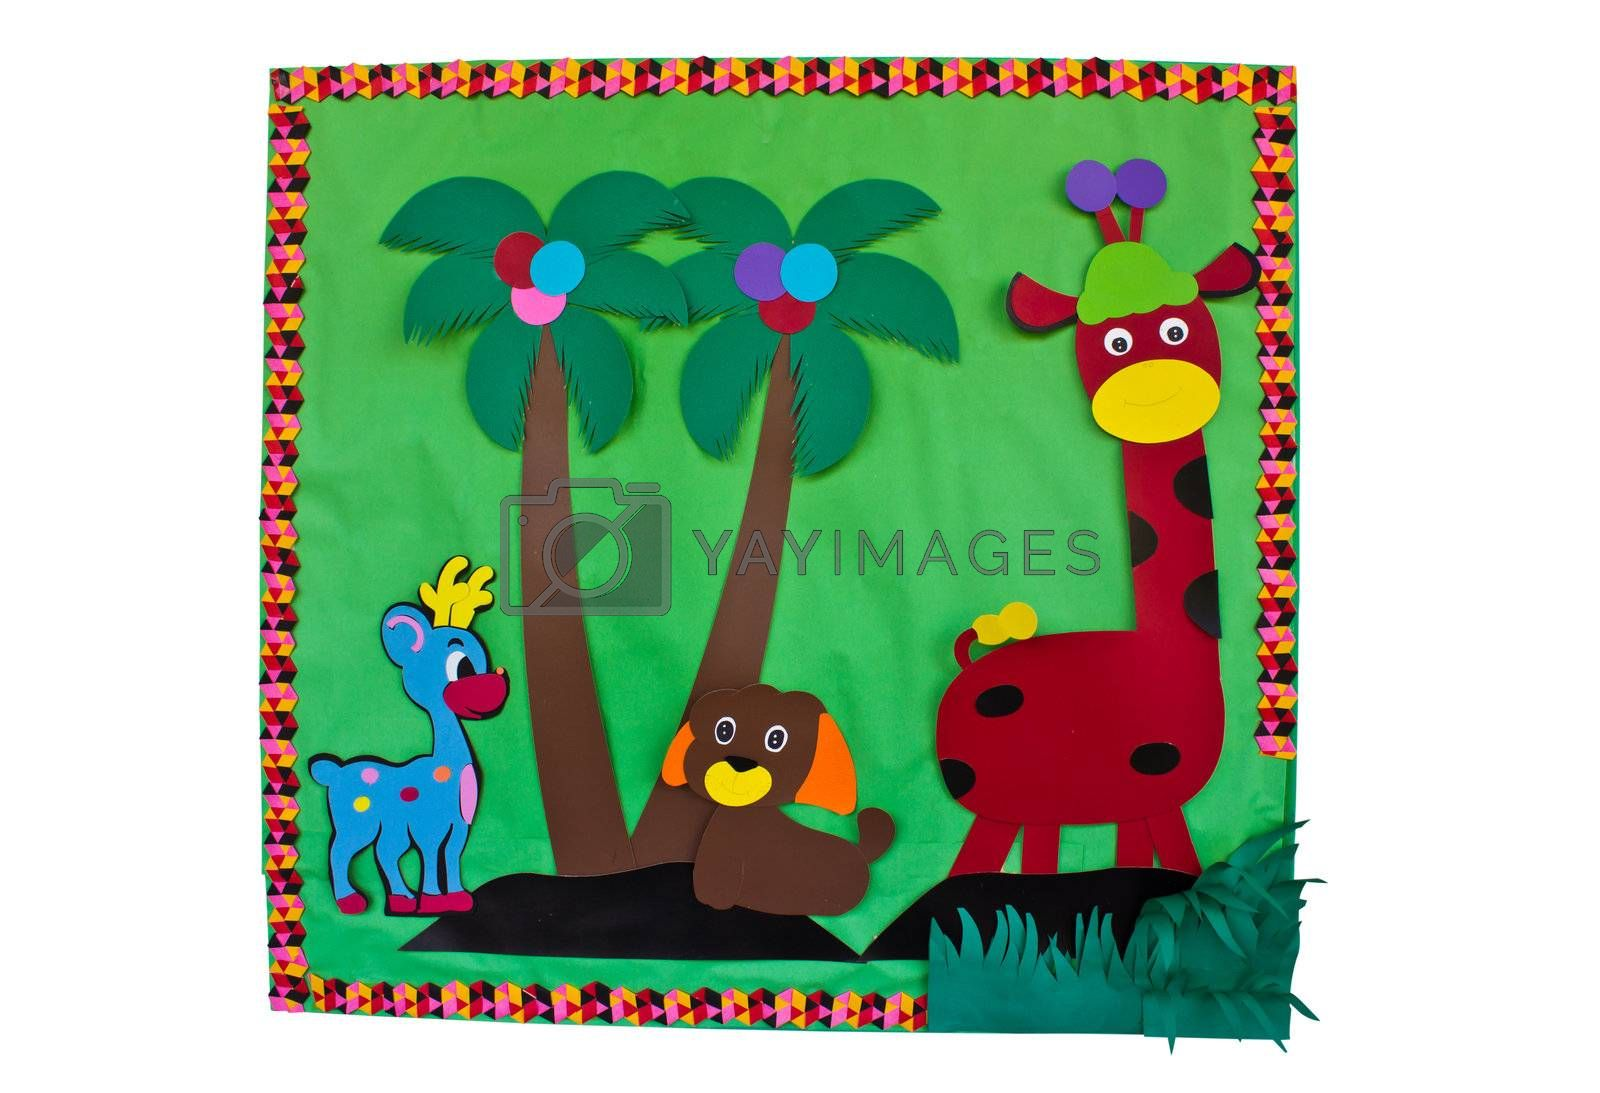 papercraft animals with flower in green background , my handmade